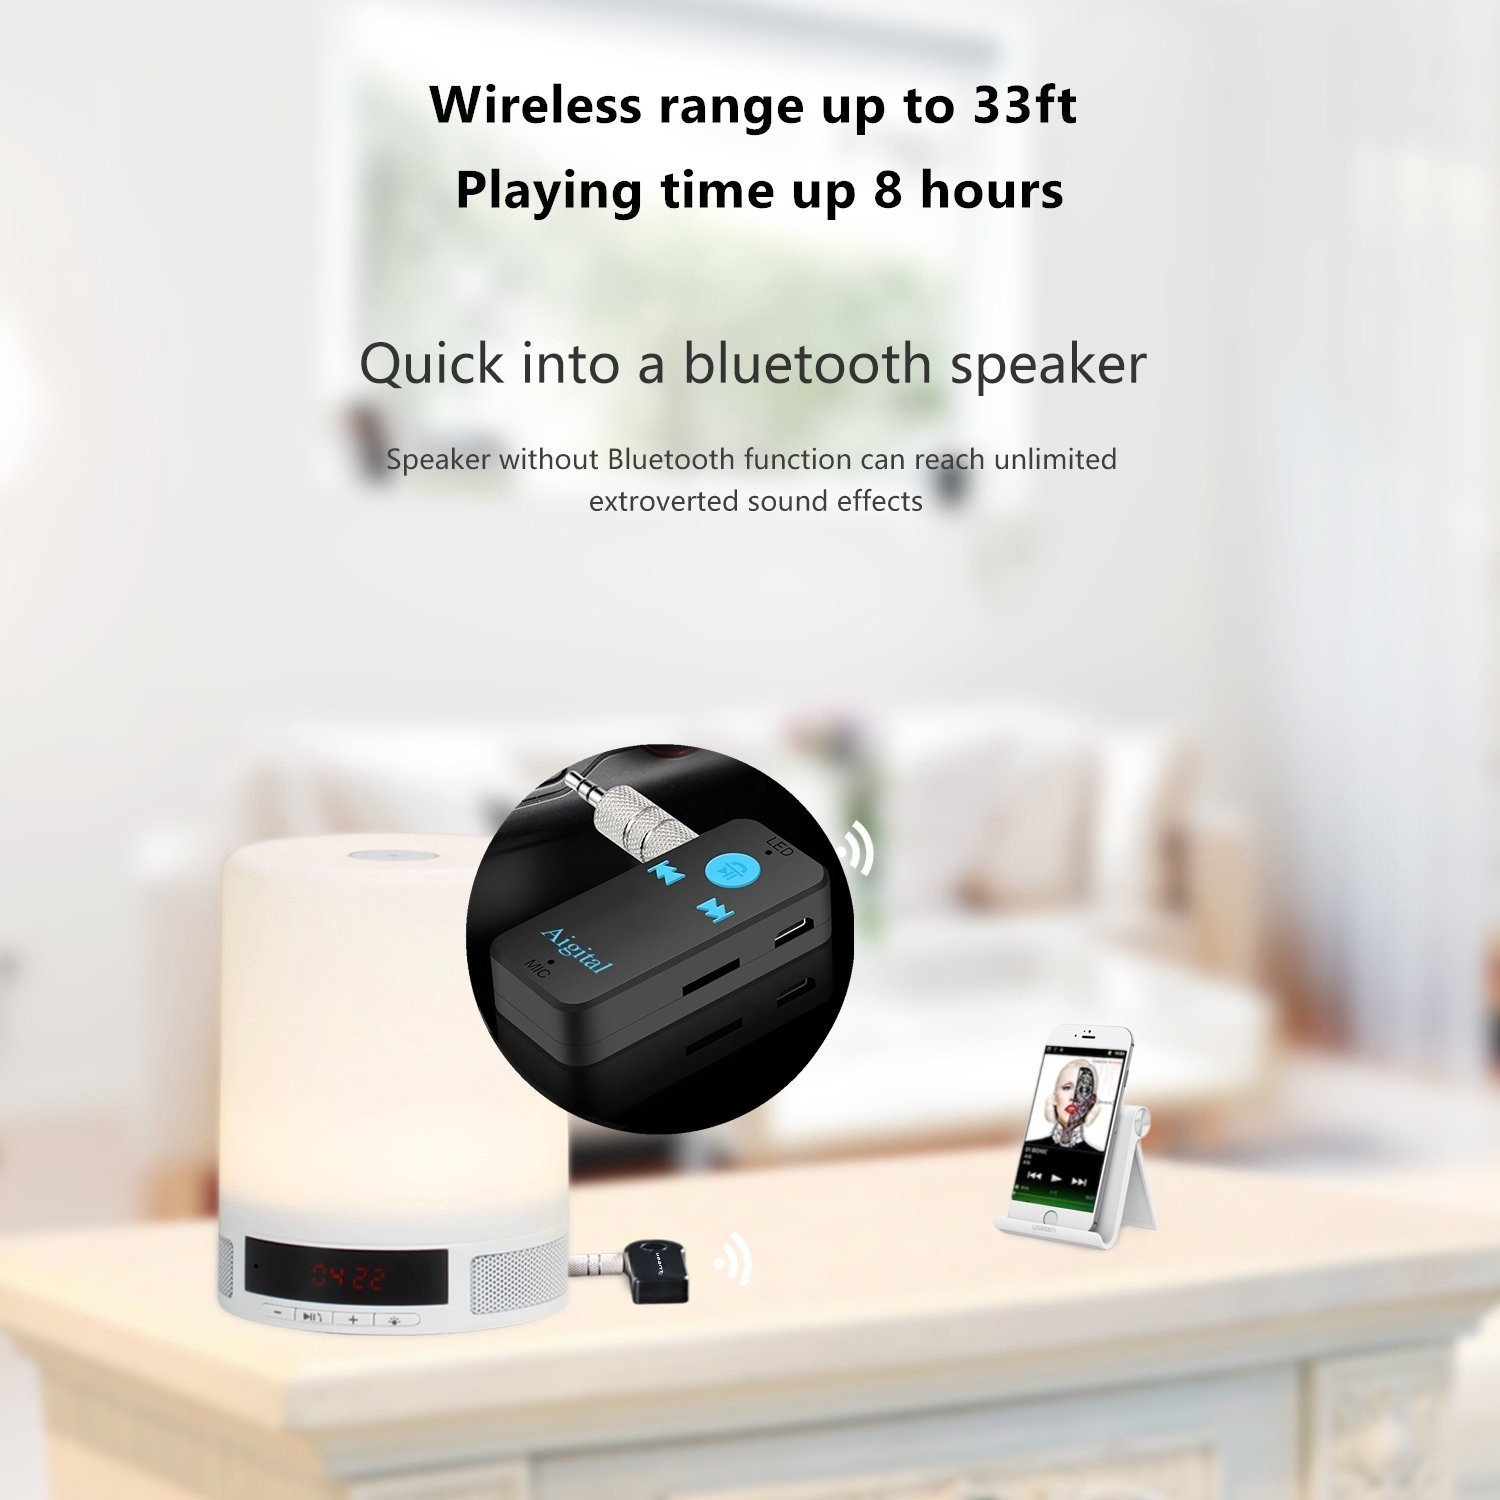 Receptor Bluetooth Aigital Adaptador Audio Inalámbrico Kit Bluetooth 4.1 con Salida Estéreo 3.5 mm para Altavoz, Auriculares, Streaming, casa y Kit Auto ...